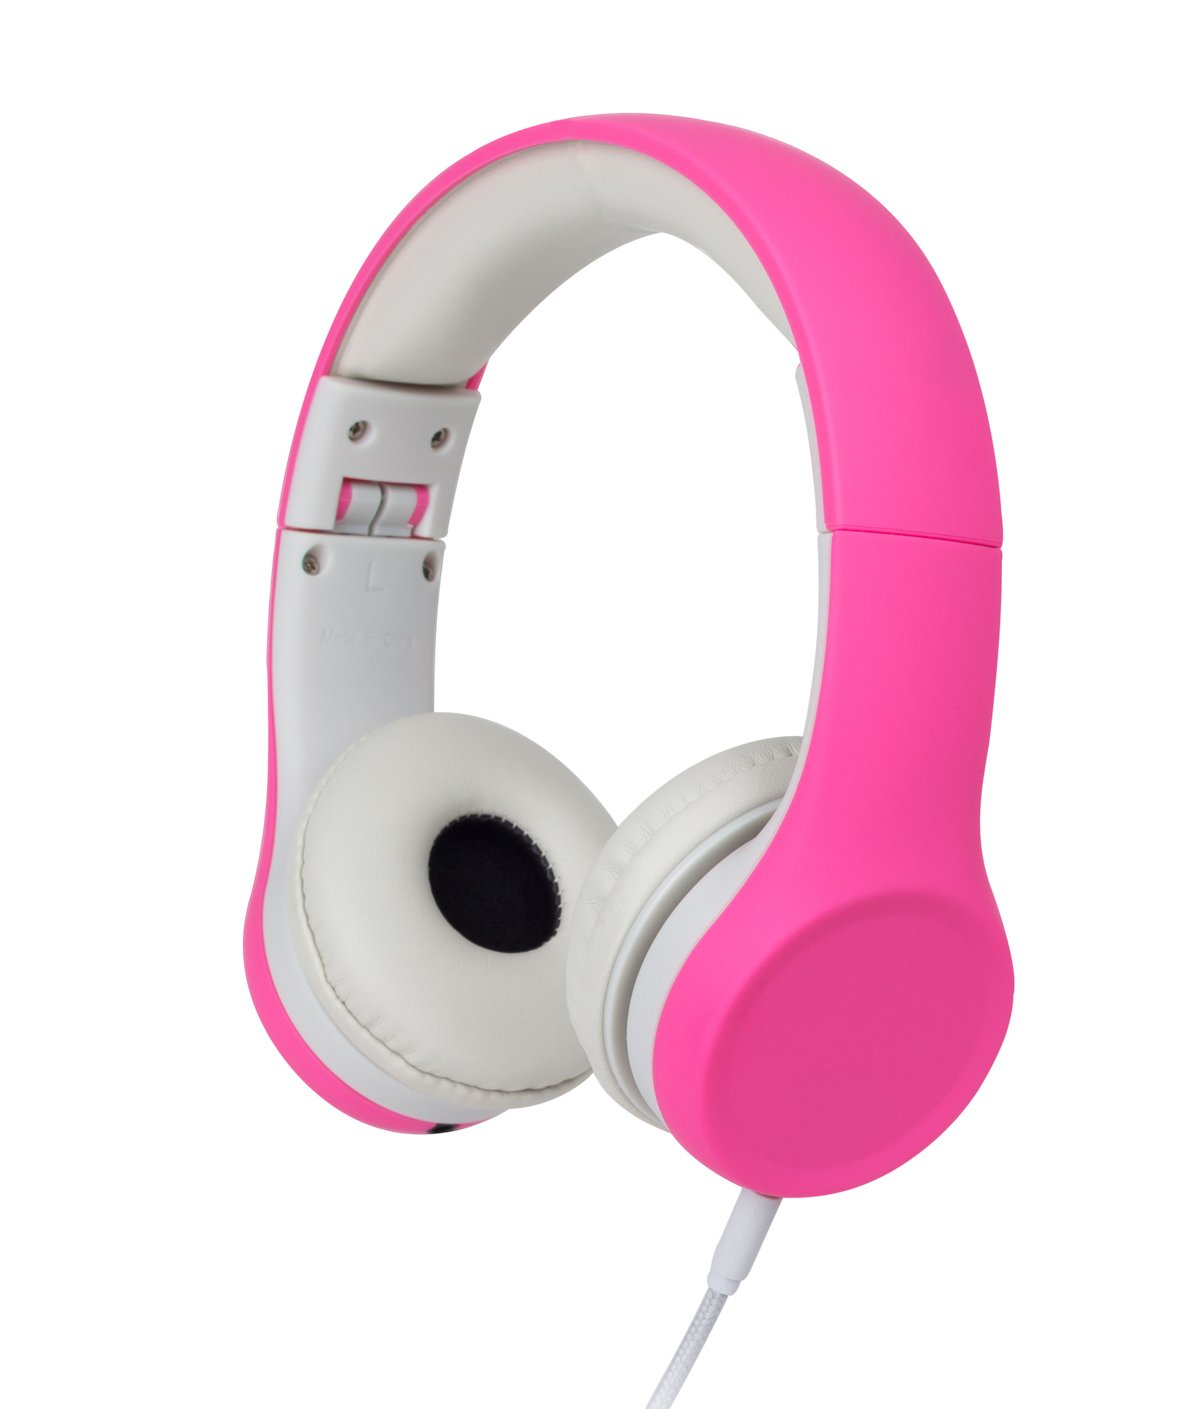 Snug Play+ Kids Headphones Volume Limiting and Audio Sharing Port (Pink) by Snug